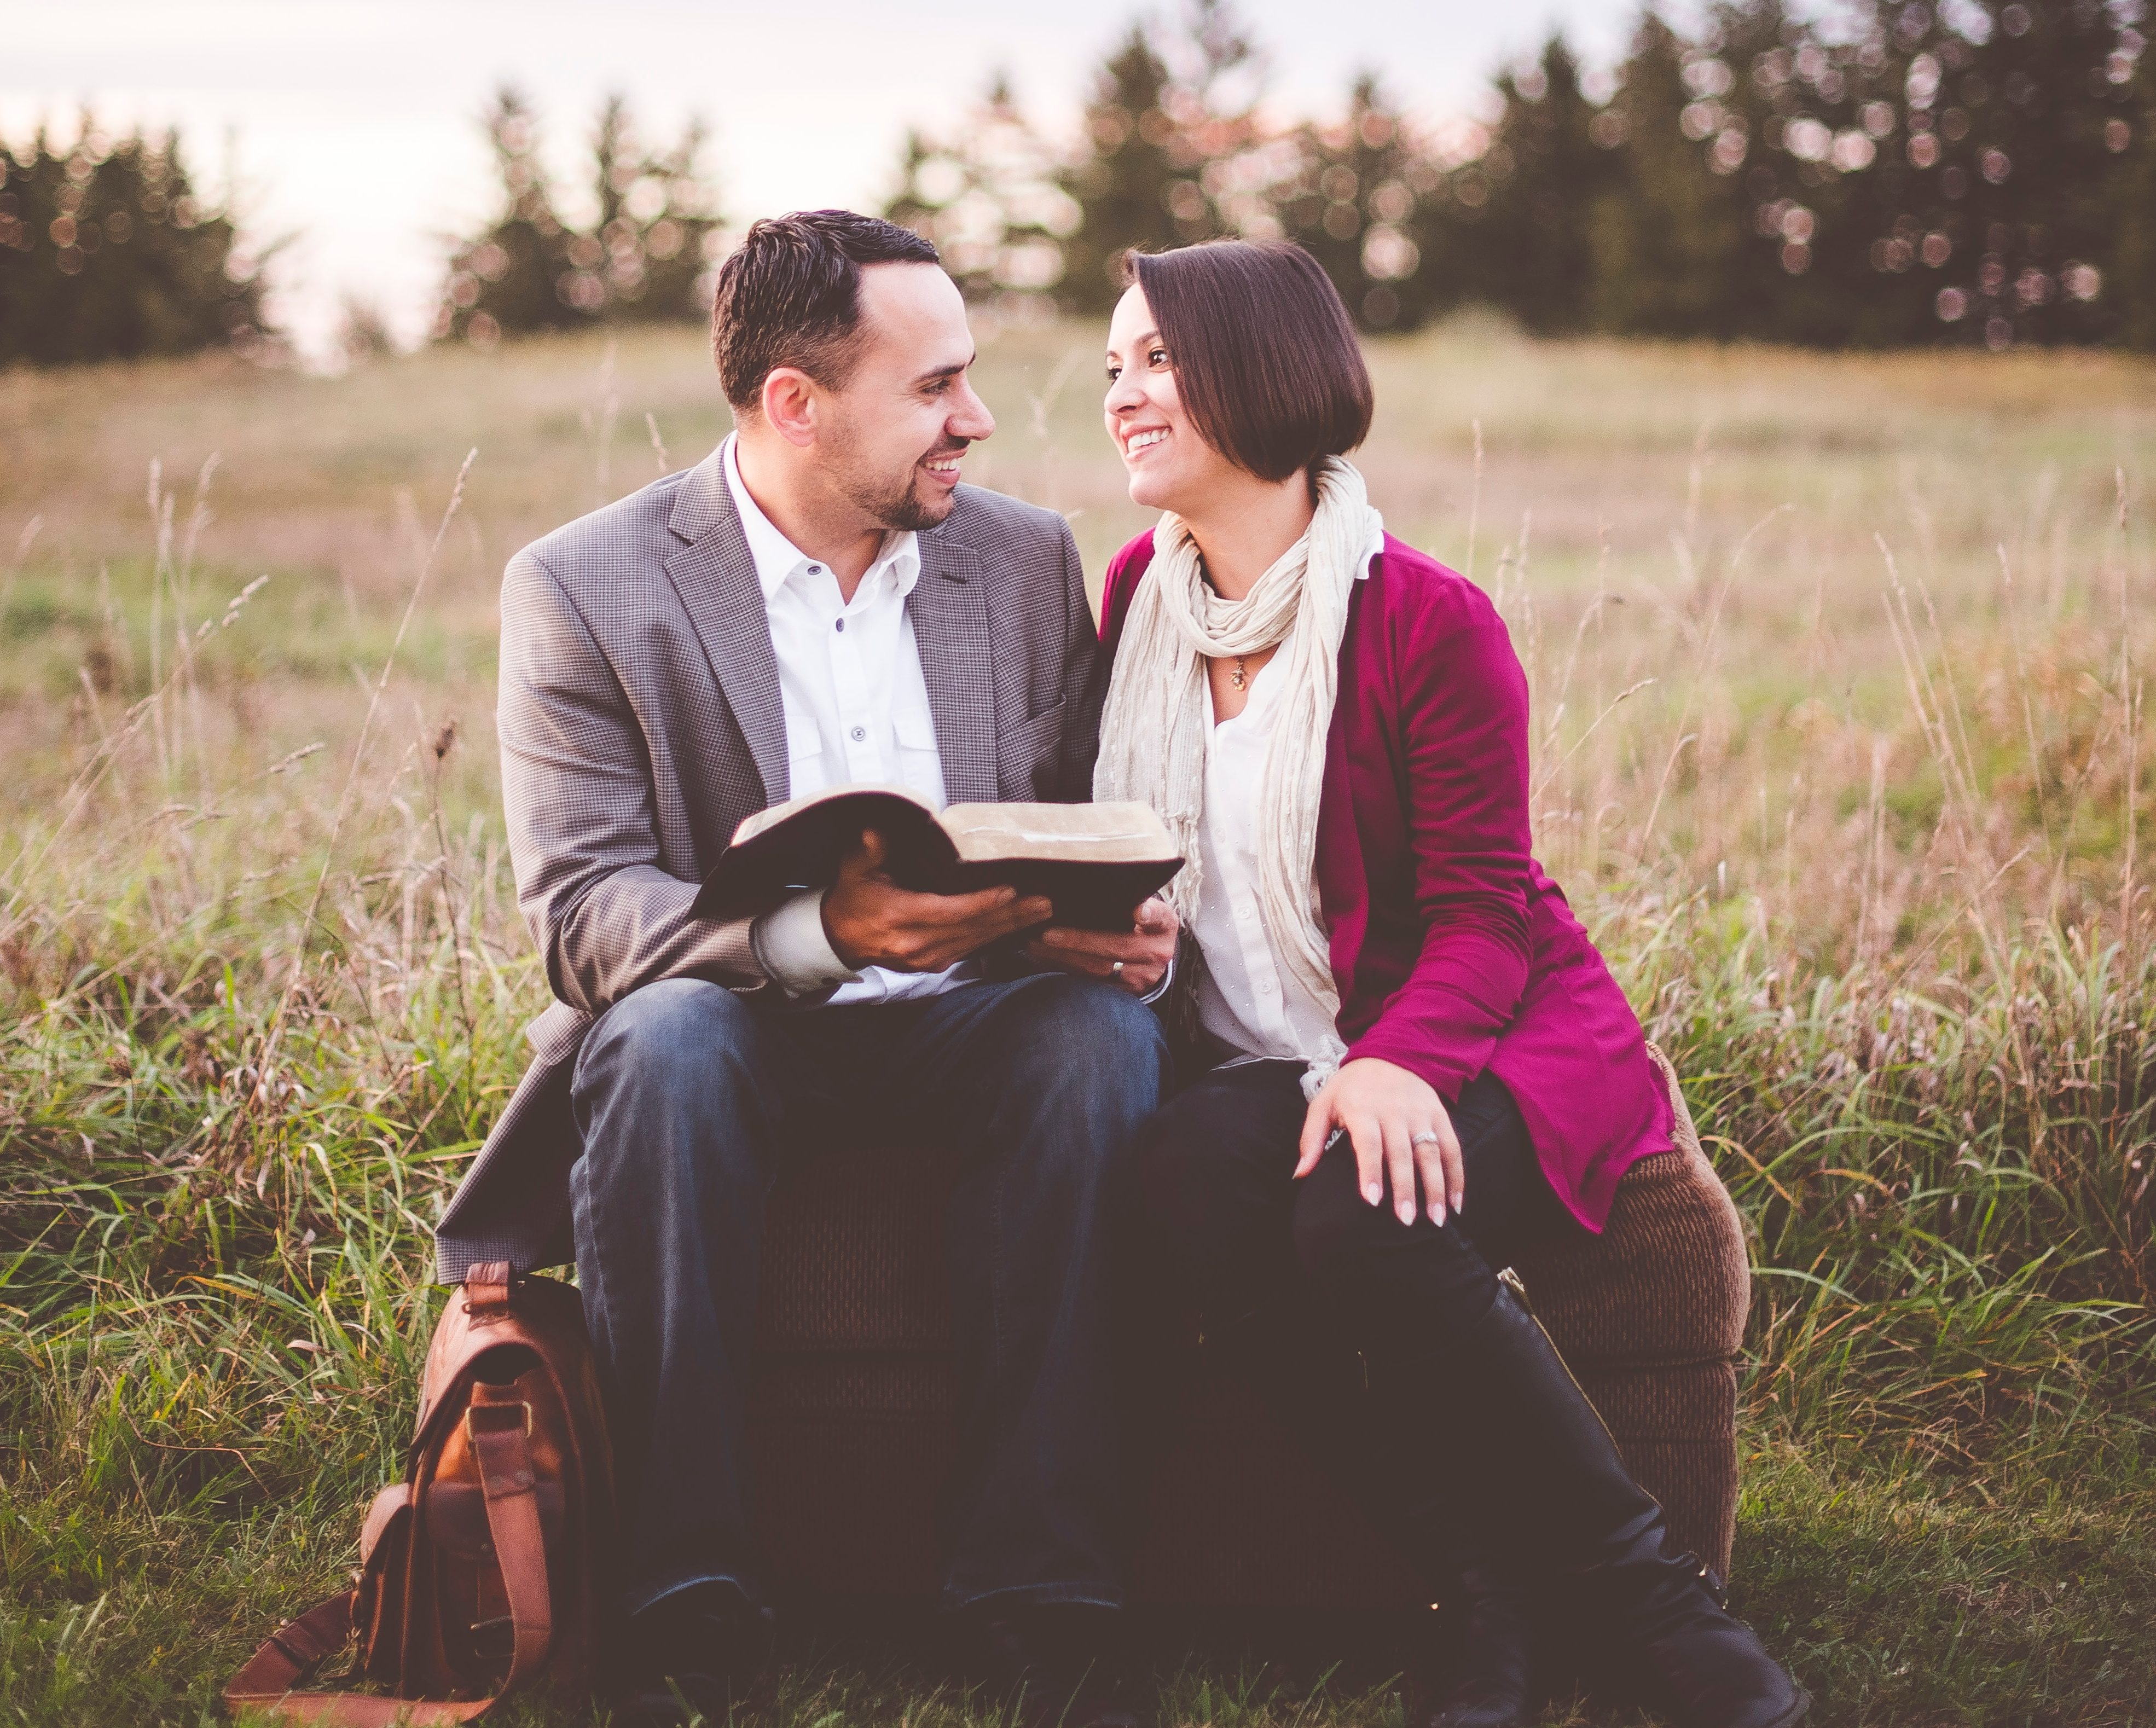 Pastor and wife sit outside and look at each other